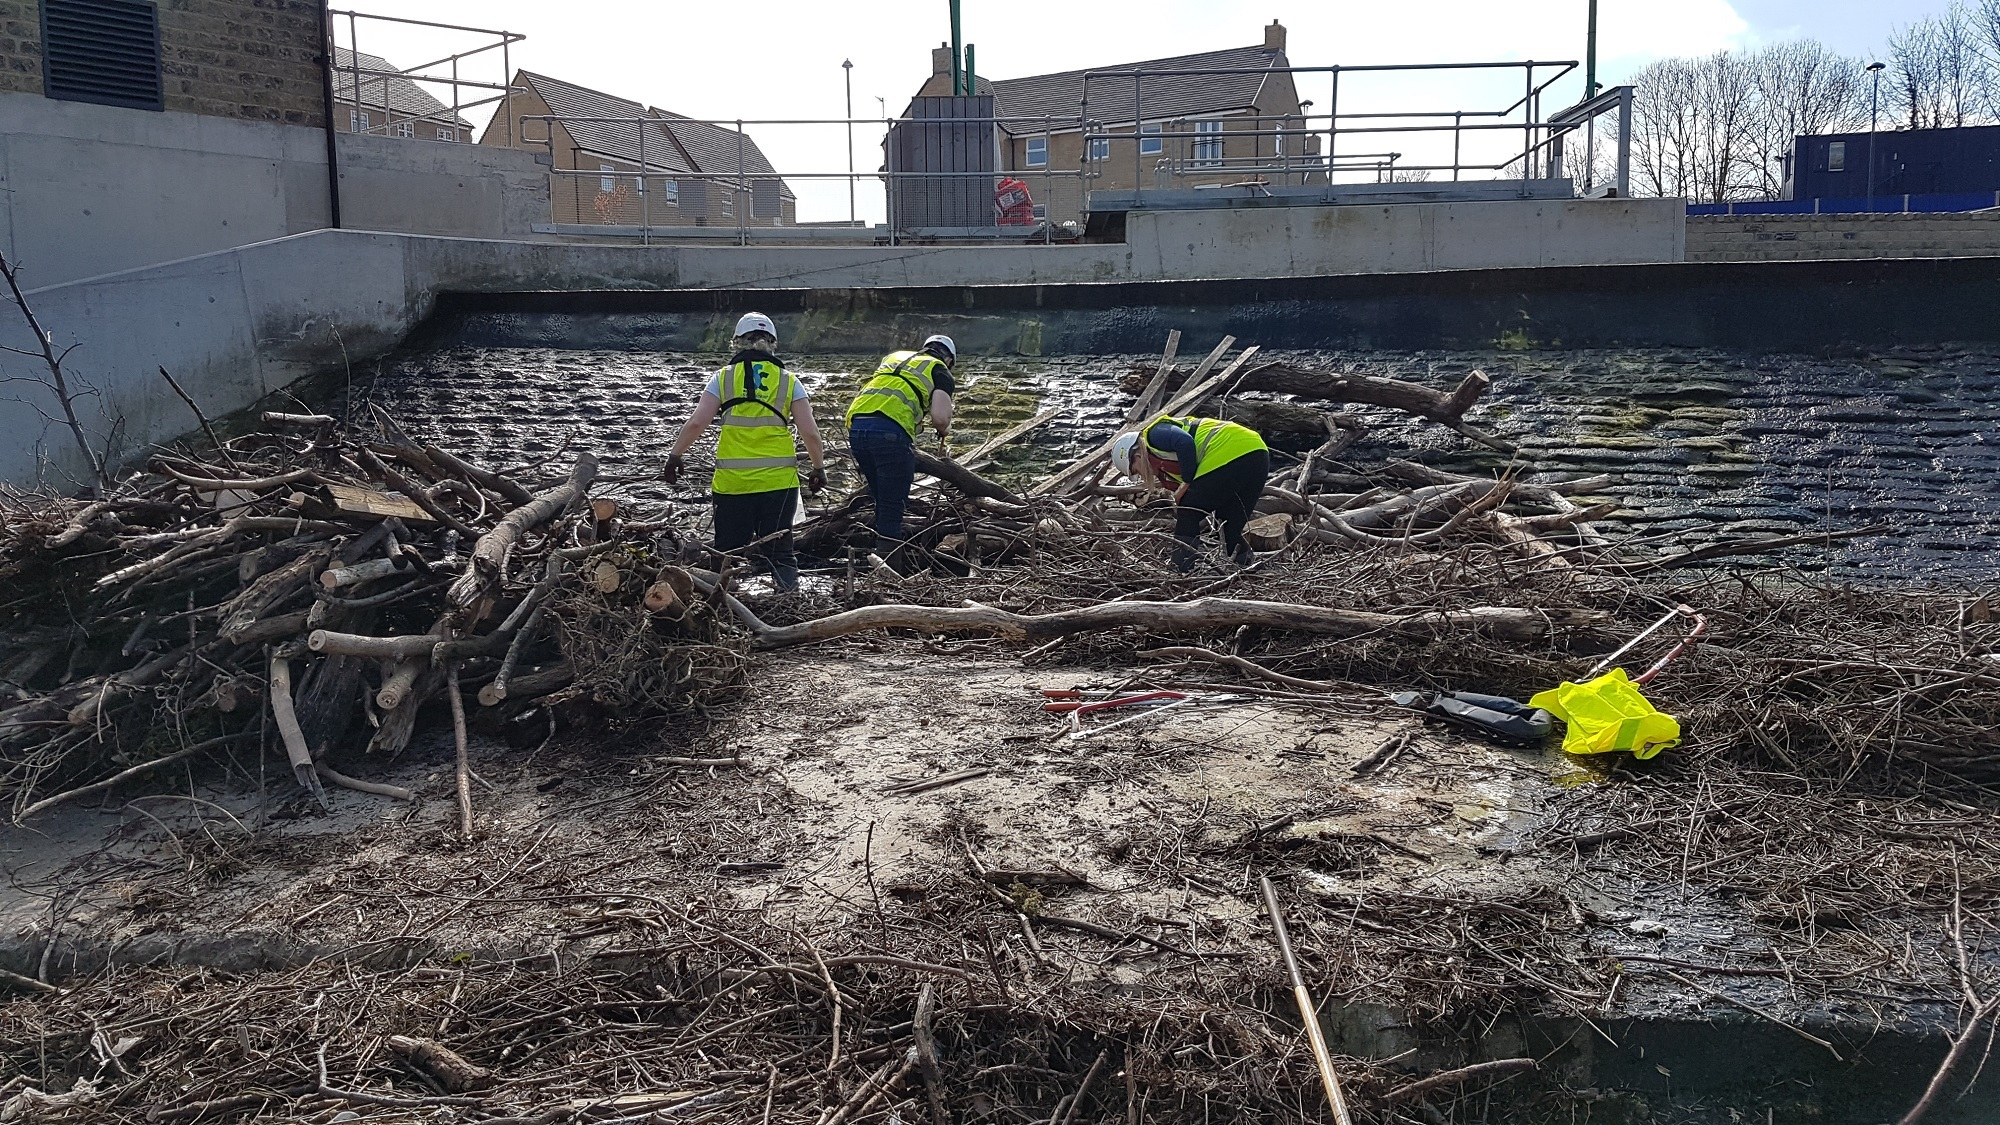 Volunteers clearing debris from Otley weir during a previous river clean-up day